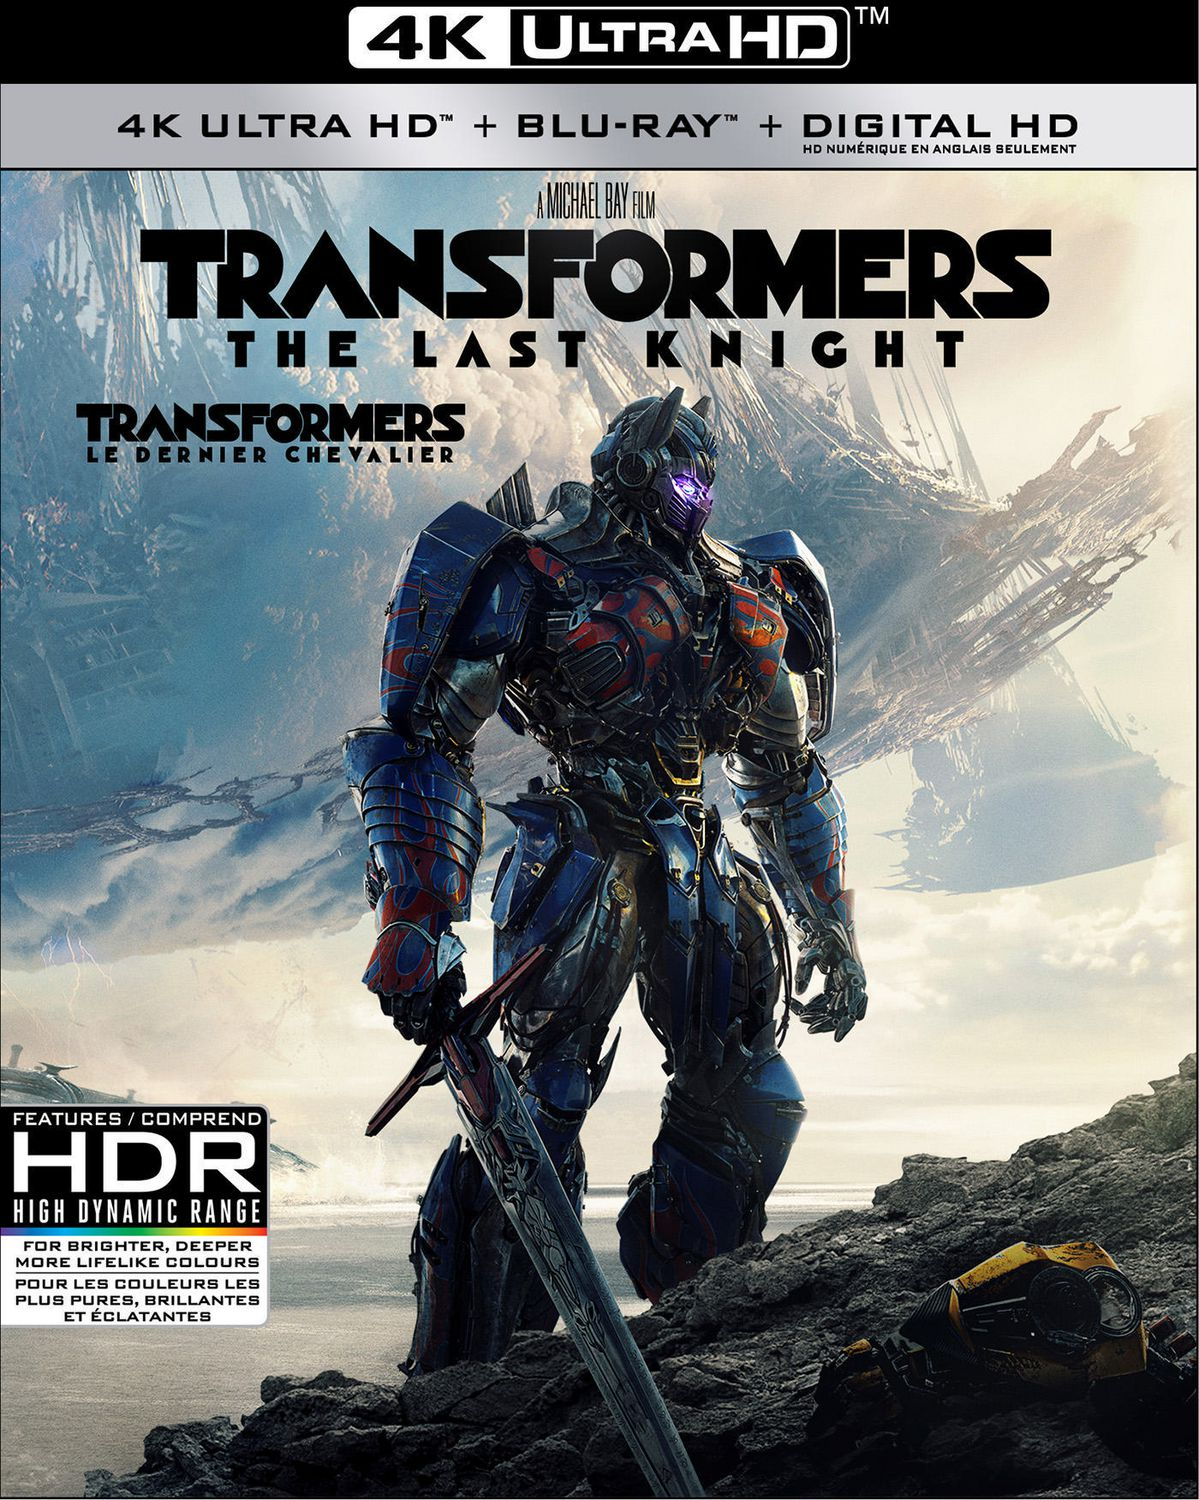 Transformers: The Last Knight (2017) 4K UHD - Page 3 - Blu-ray Forum